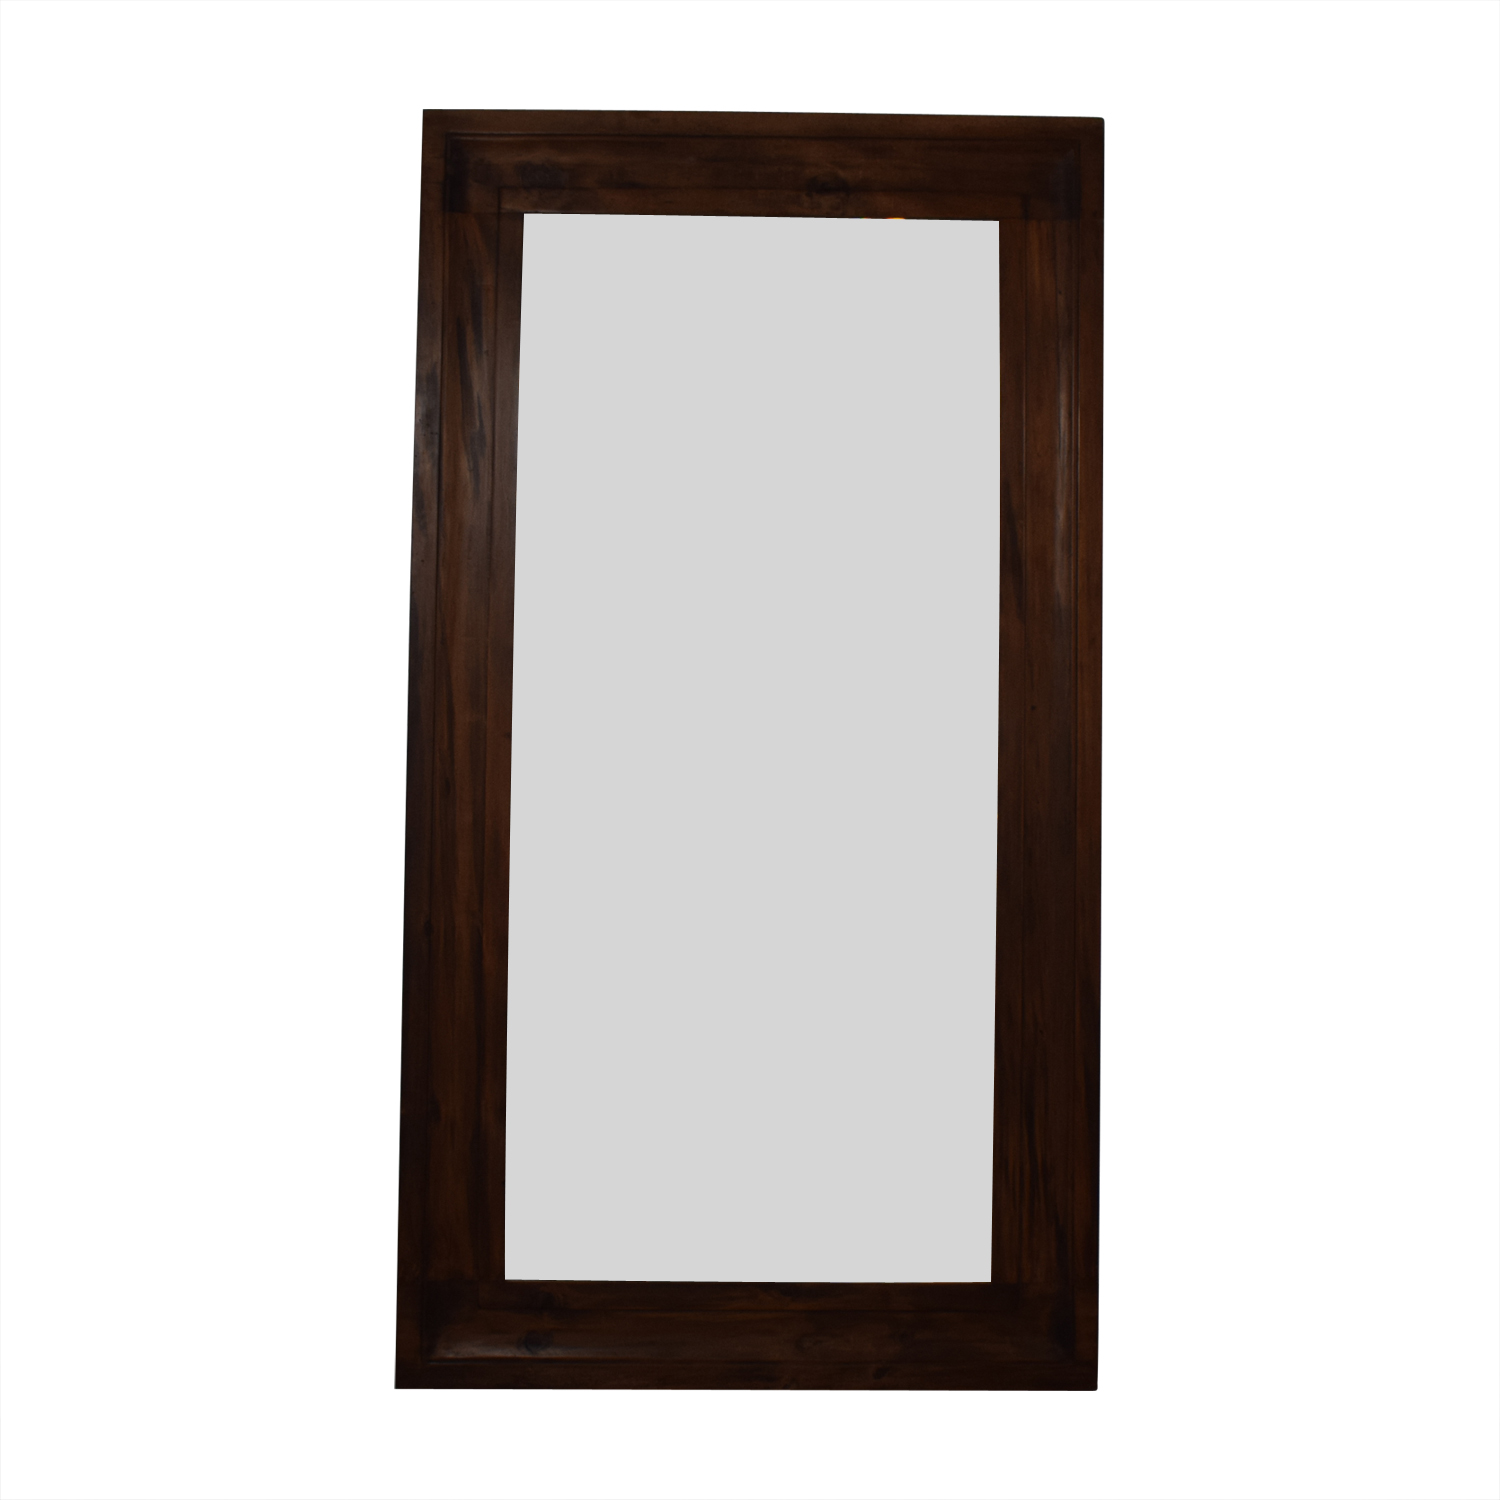 Environment Furniture Floor Mirror / Decor